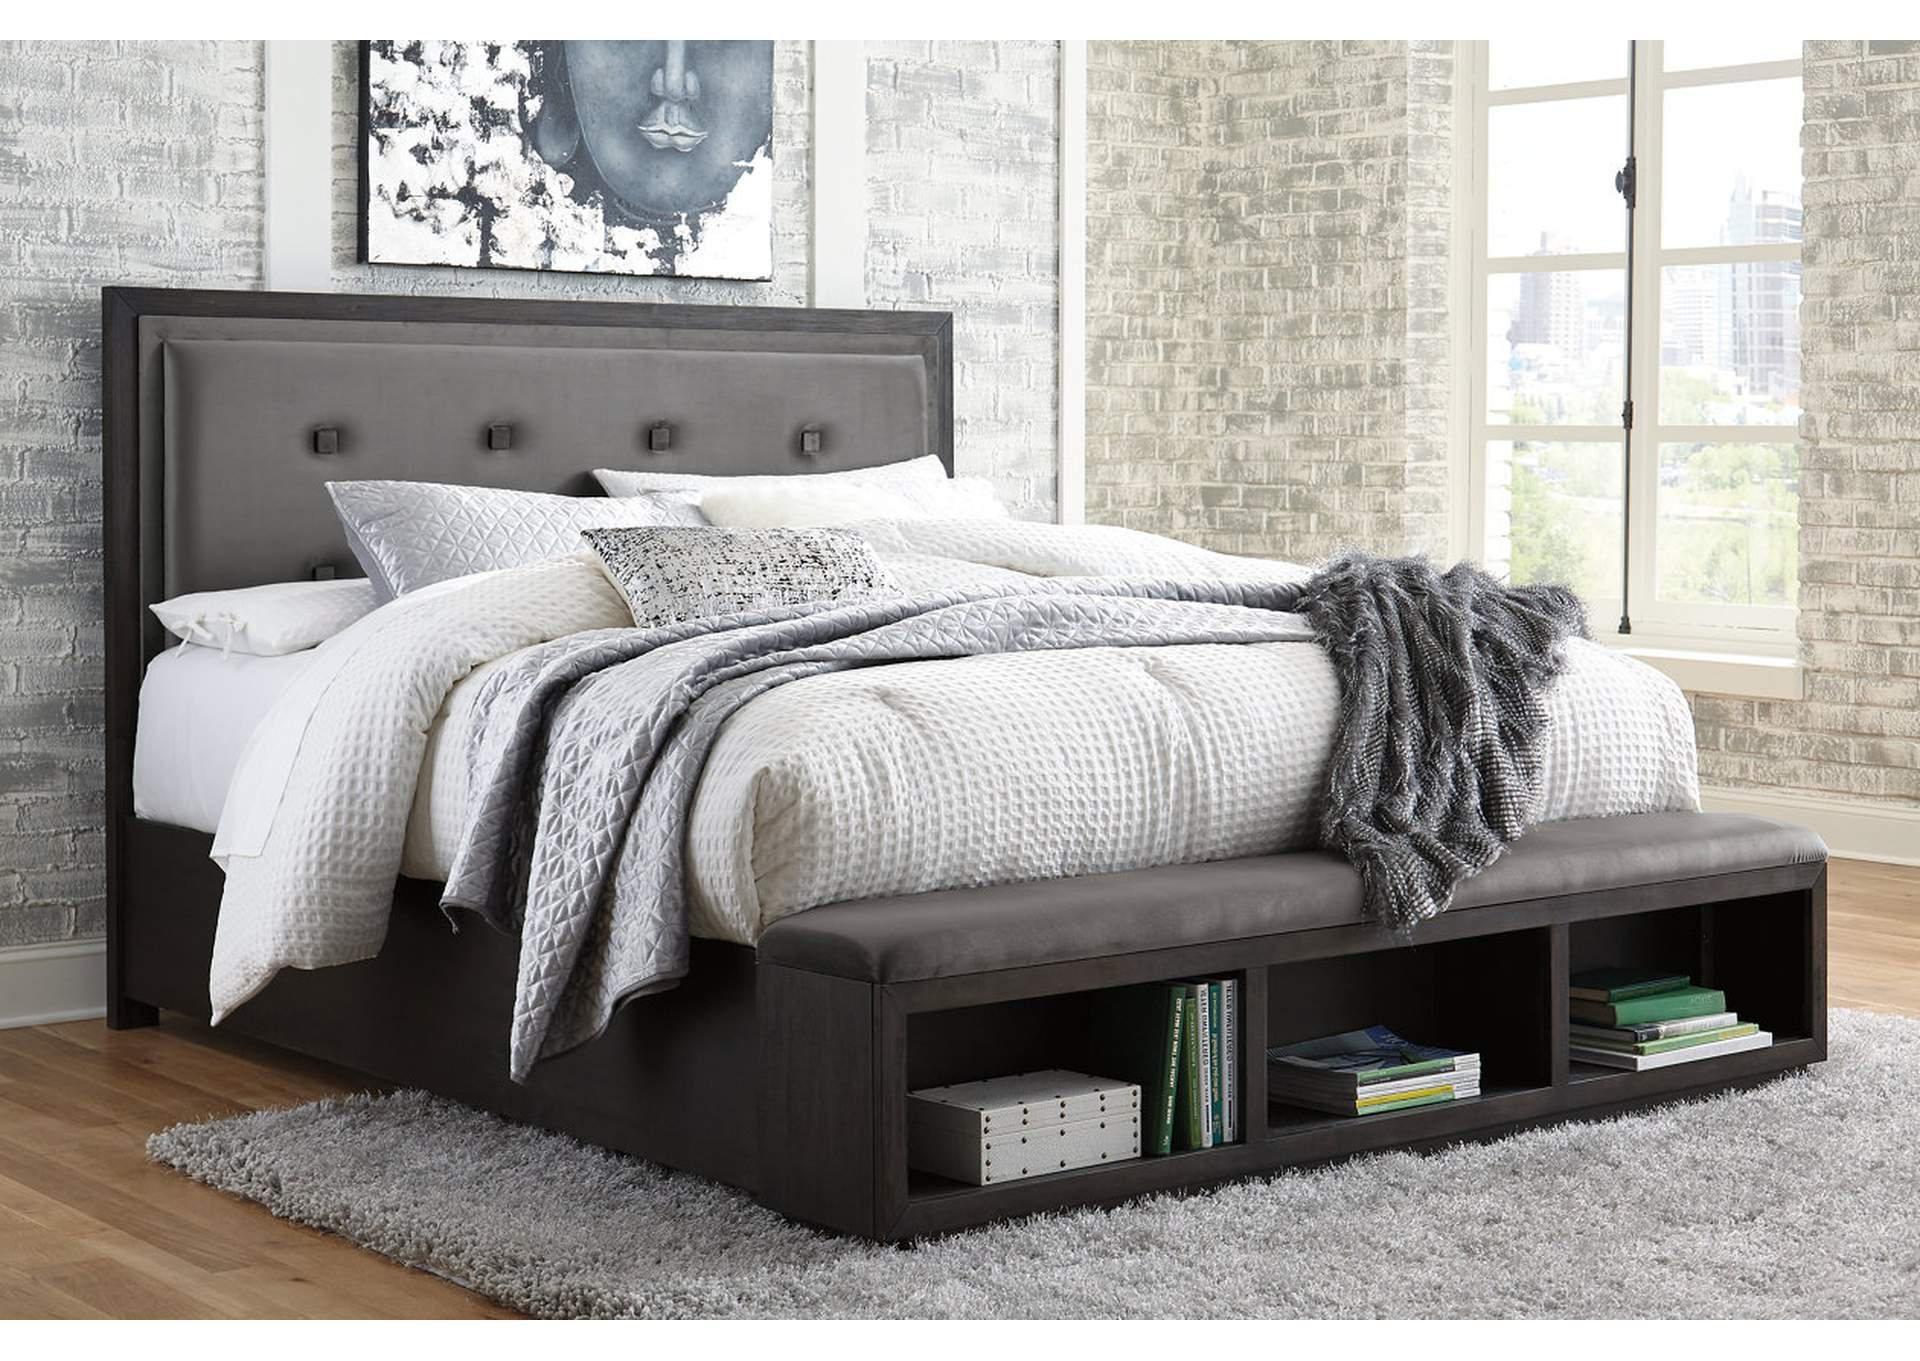 Hyndell Dark Brown California King Upholstered Storage Bed,Signature Design By Ashley